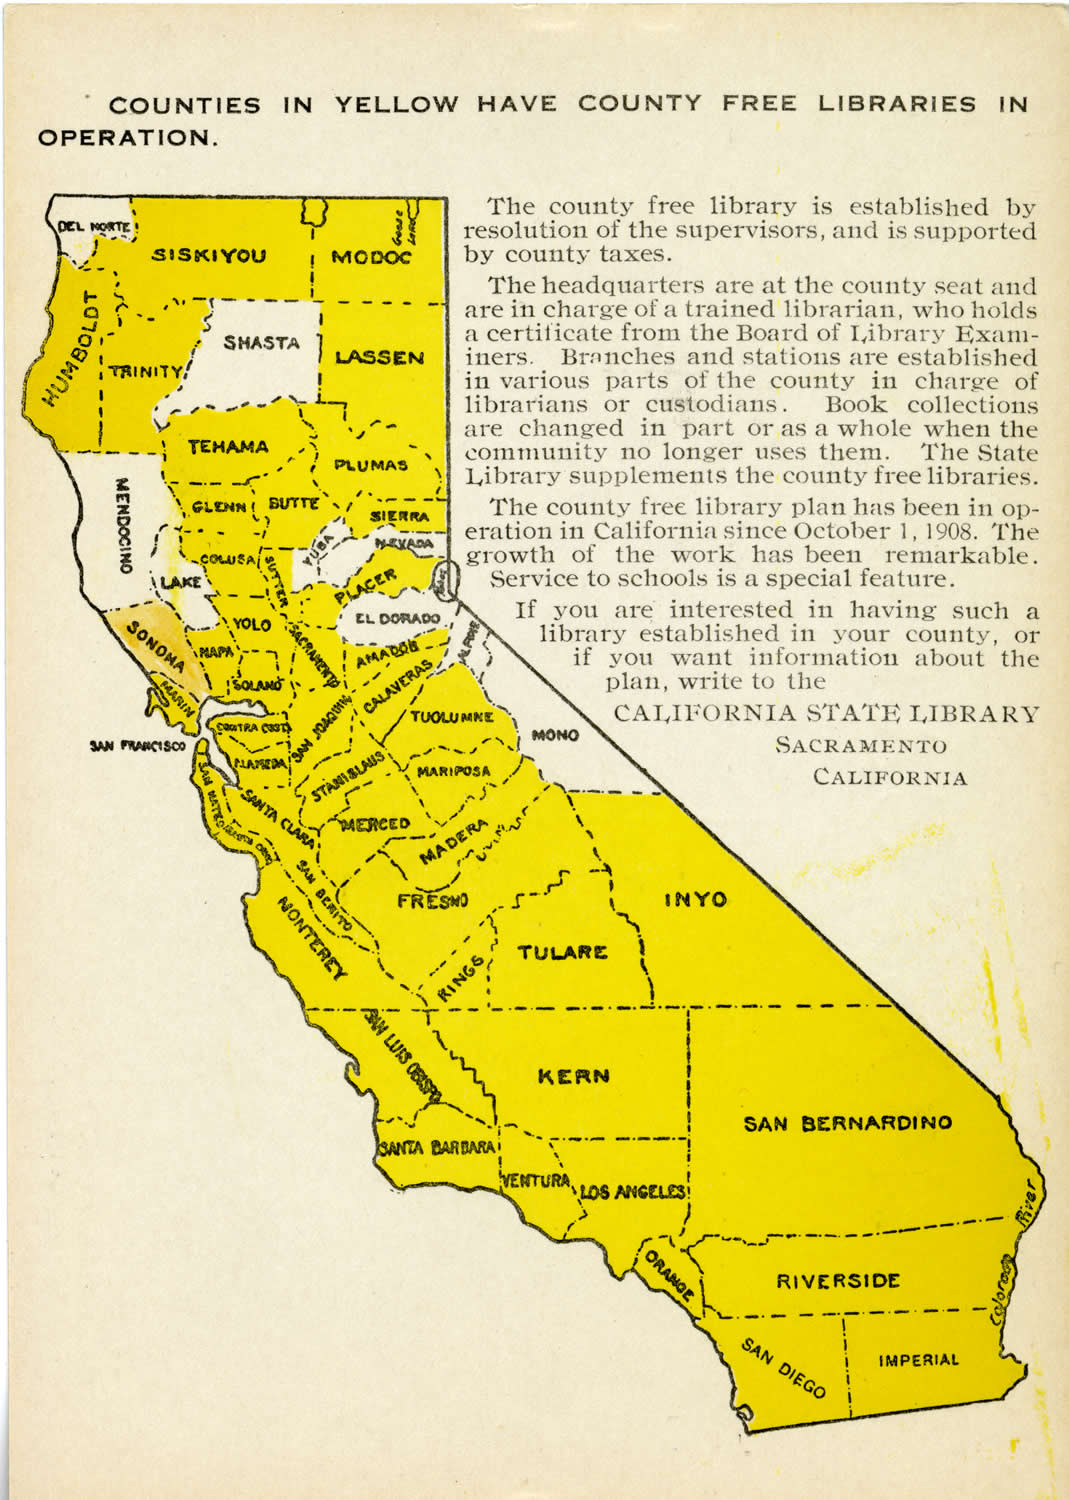 California State Library mailer with map advertising the 49 California counties with County Free Libraries, c.1910s